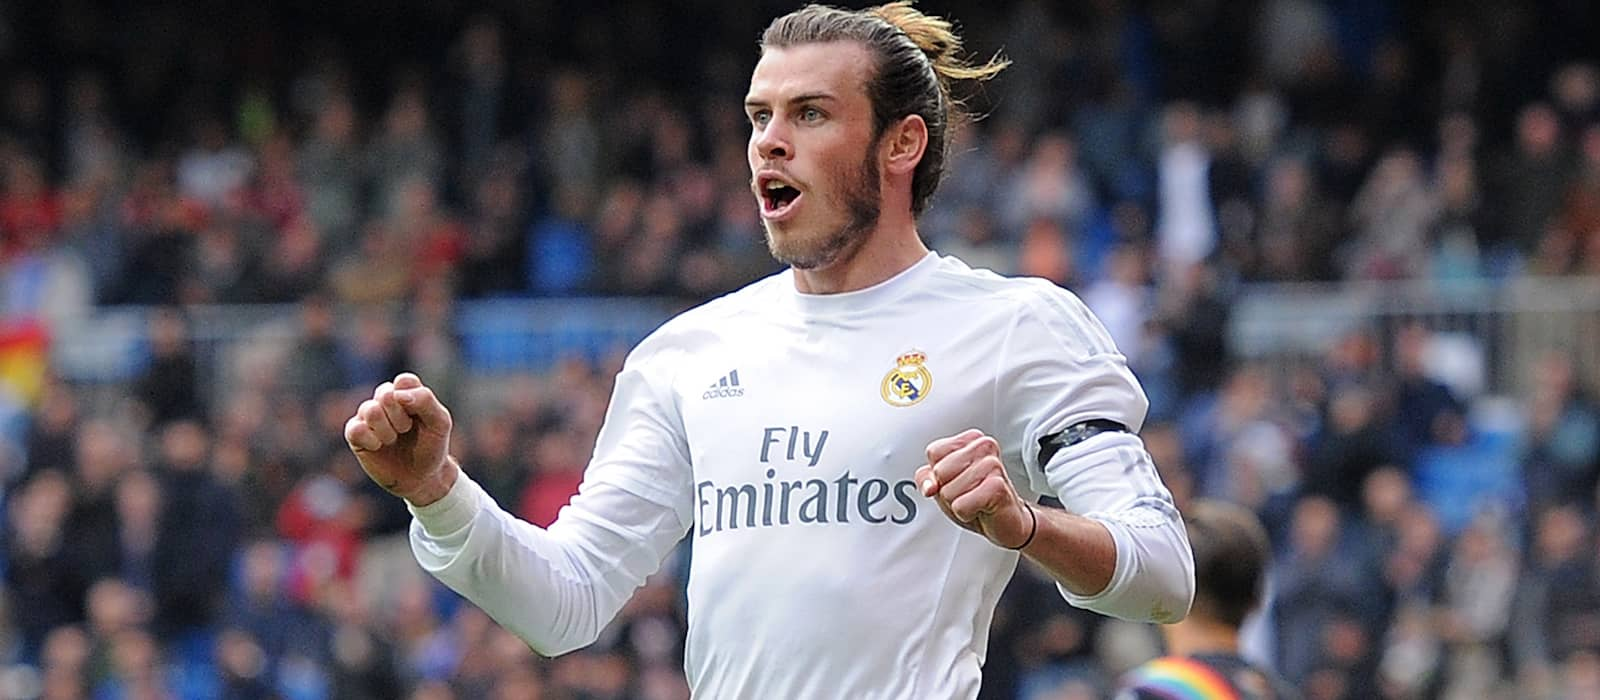 Paul Parker: You have to wonder where Gareth Bale would fit in at Manchester United